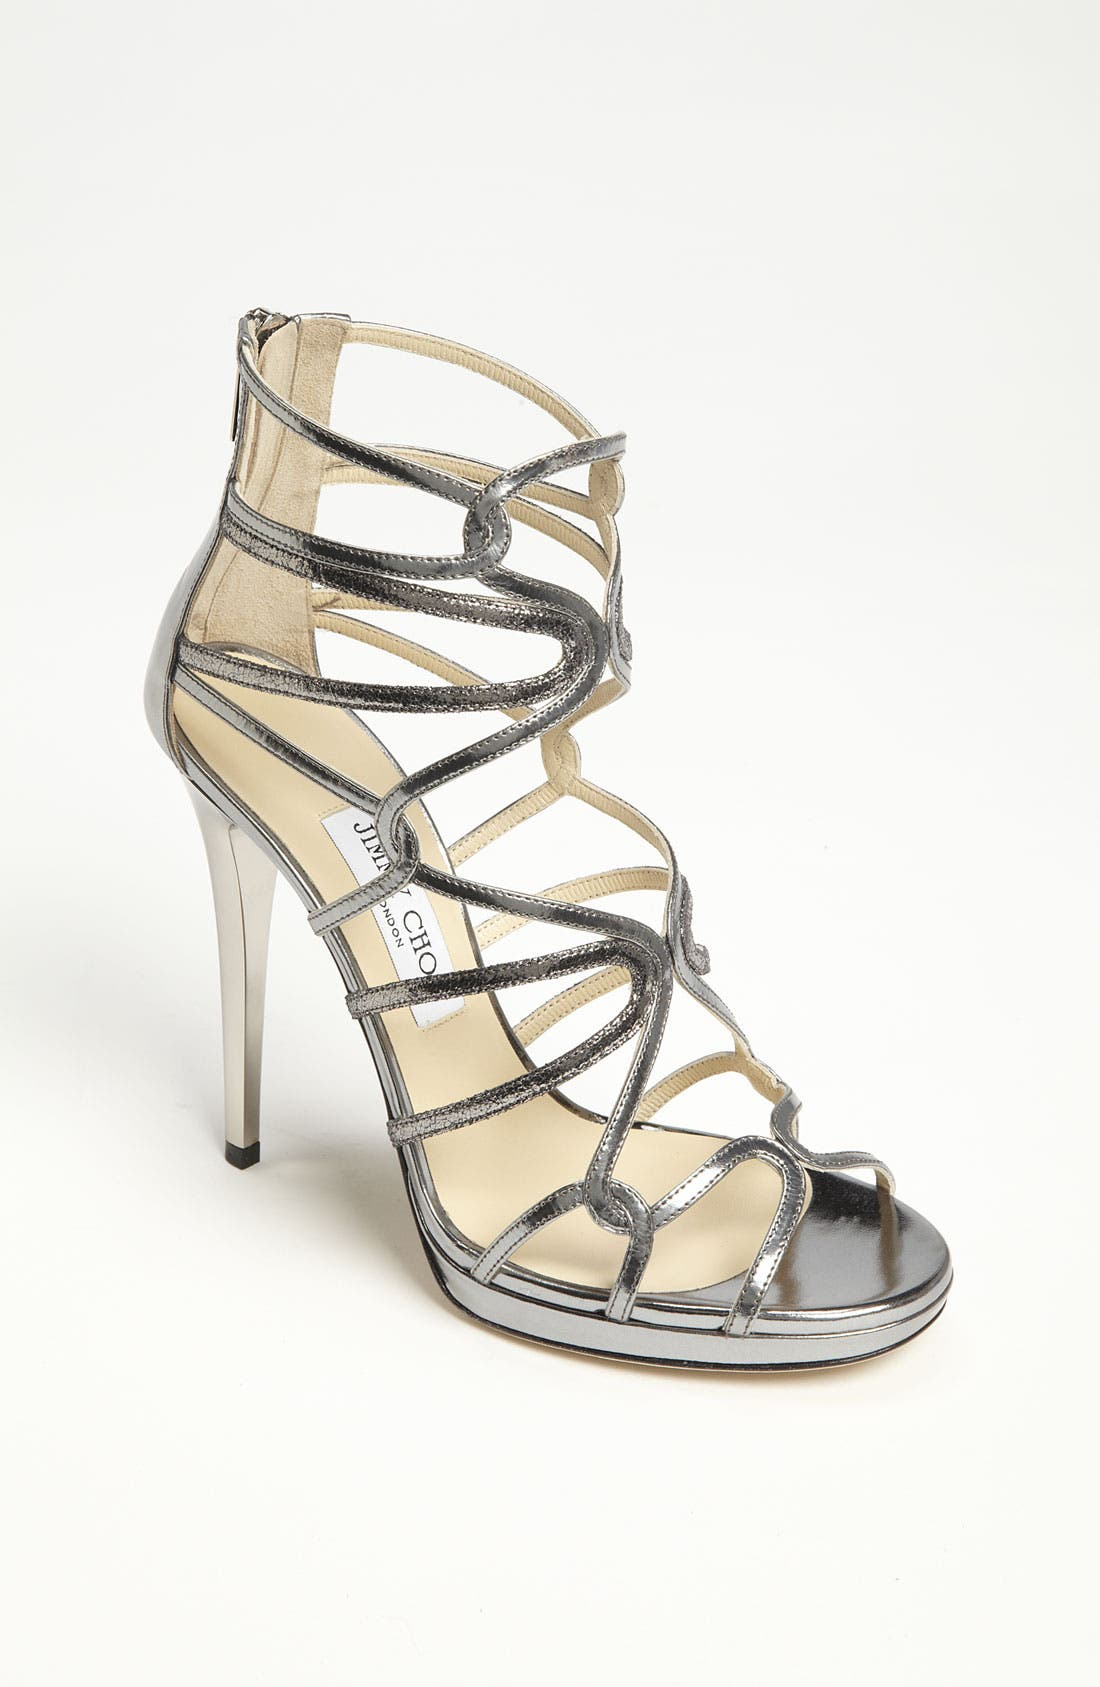 Alternate Image 1 Selected - Jimmy Choo 'Lake' Strap Sandal